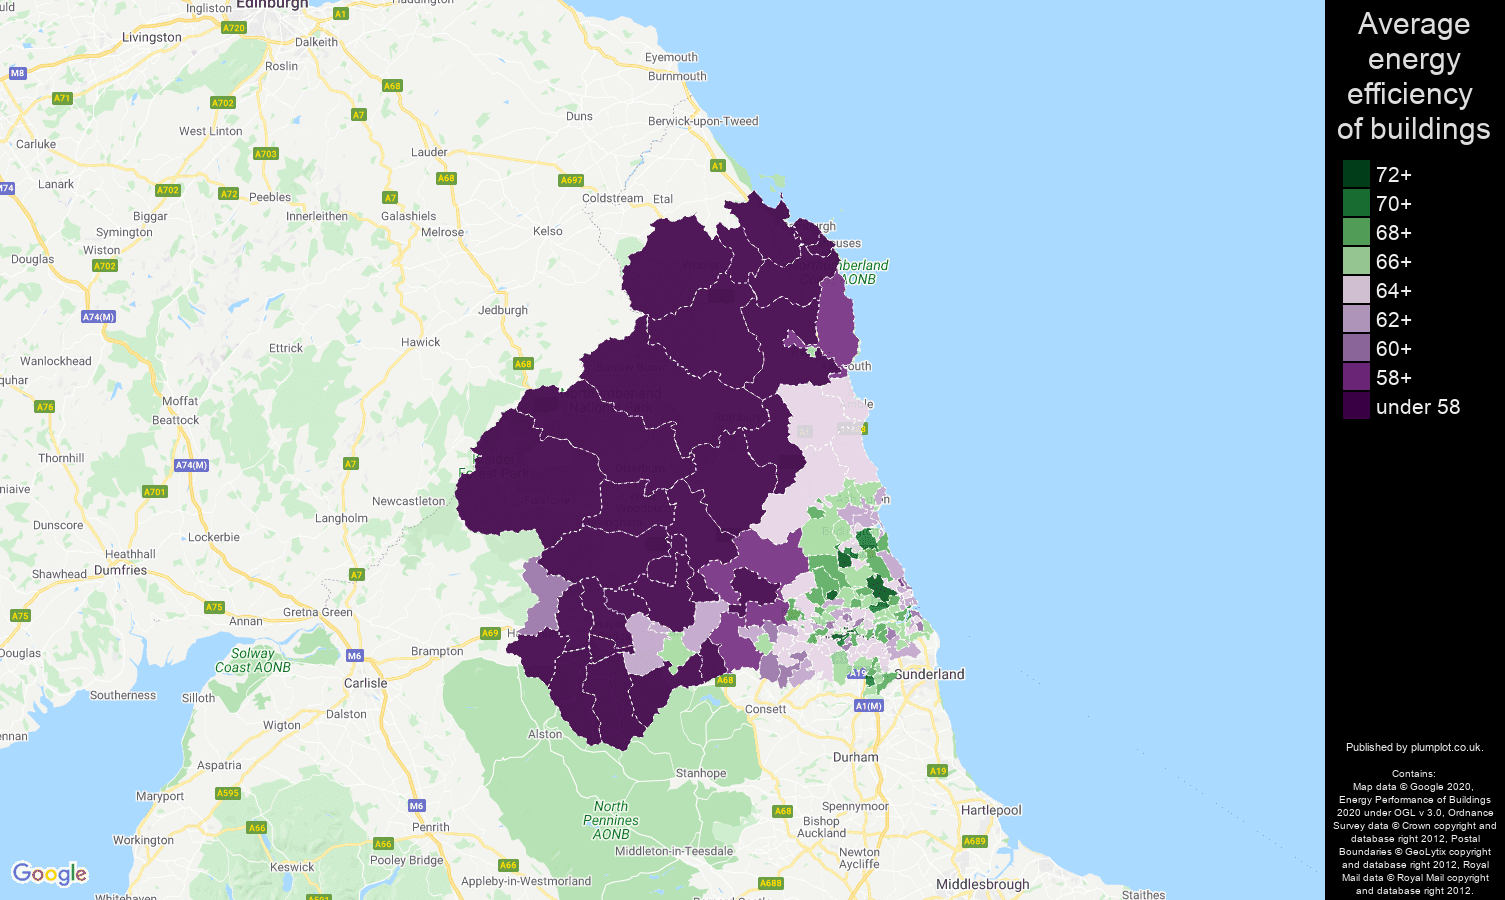 Newcastle upon Tyne map of energy efficiency of properties